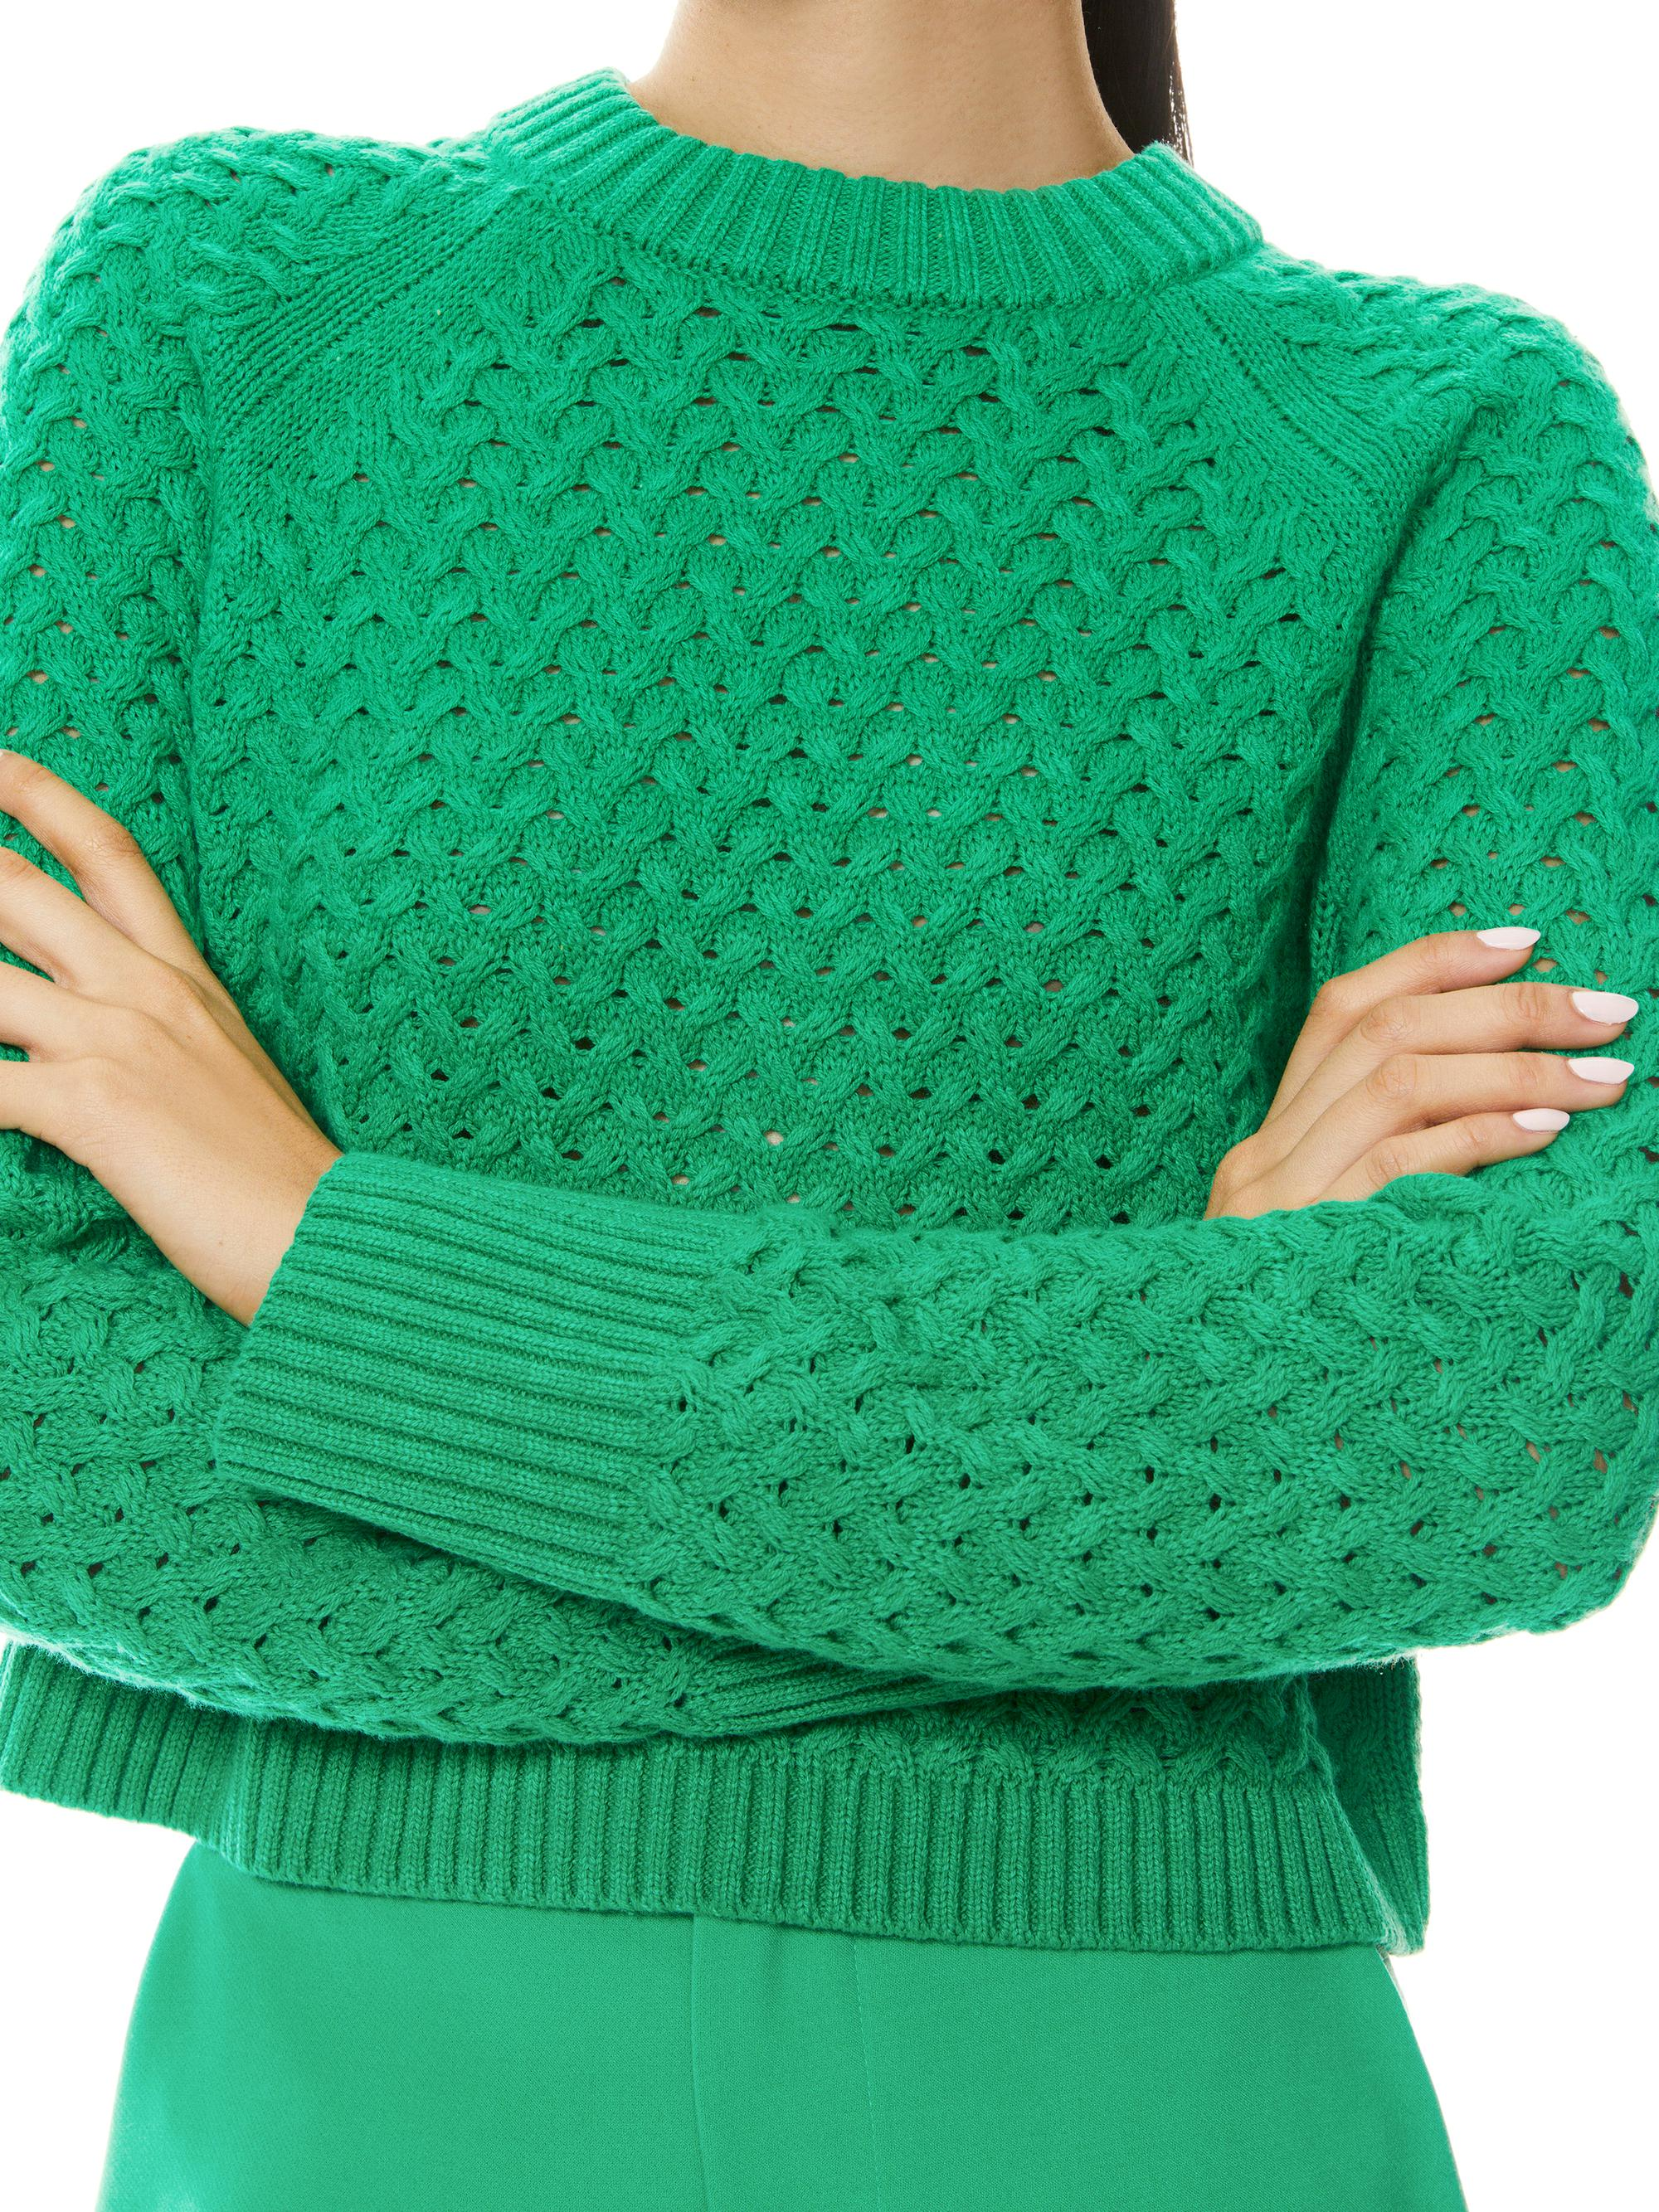 LETA CROPPED PULLOVER 4